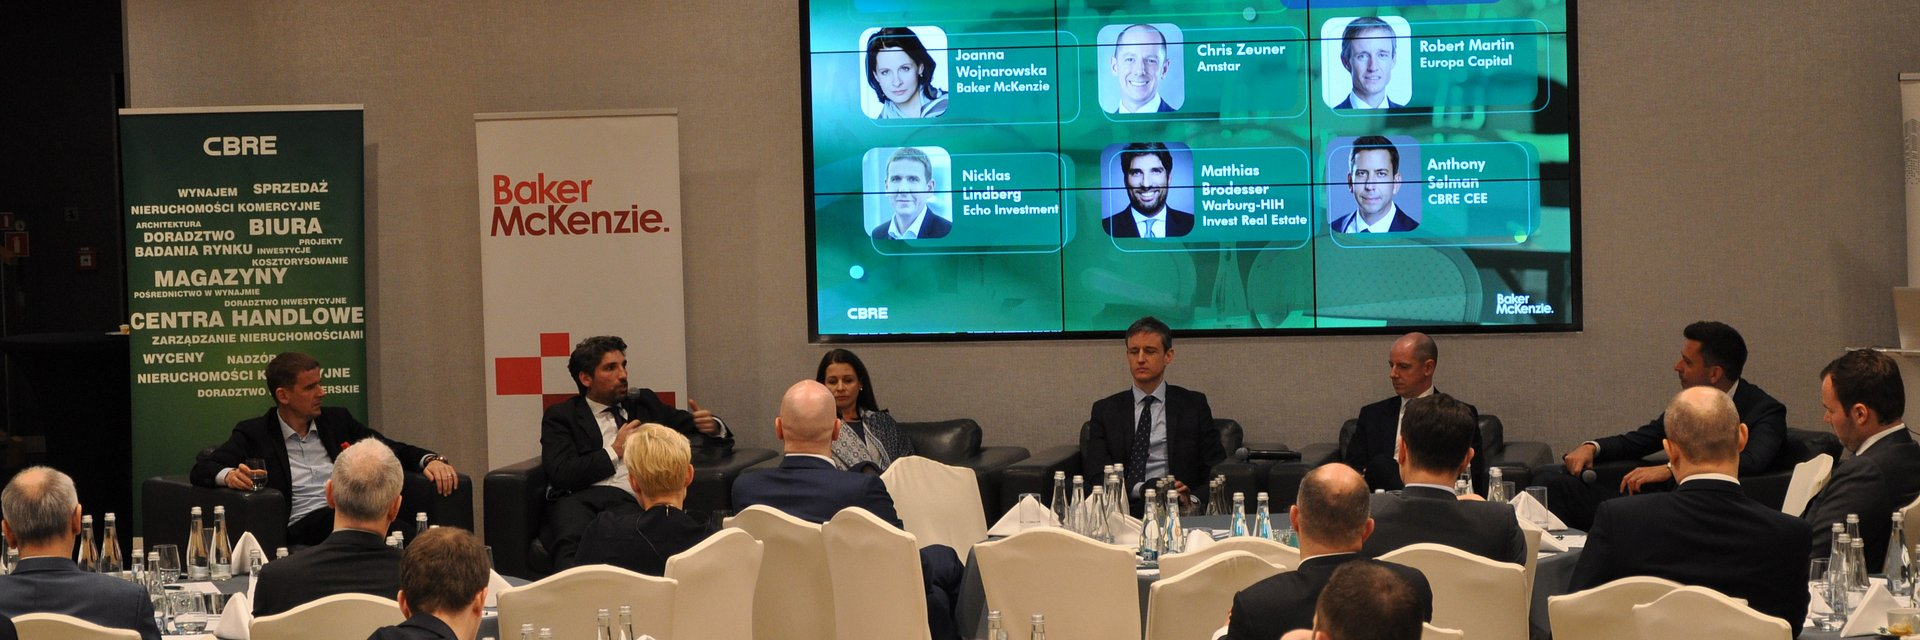 Investment Breakfast | CBRE & Baker McKenzie